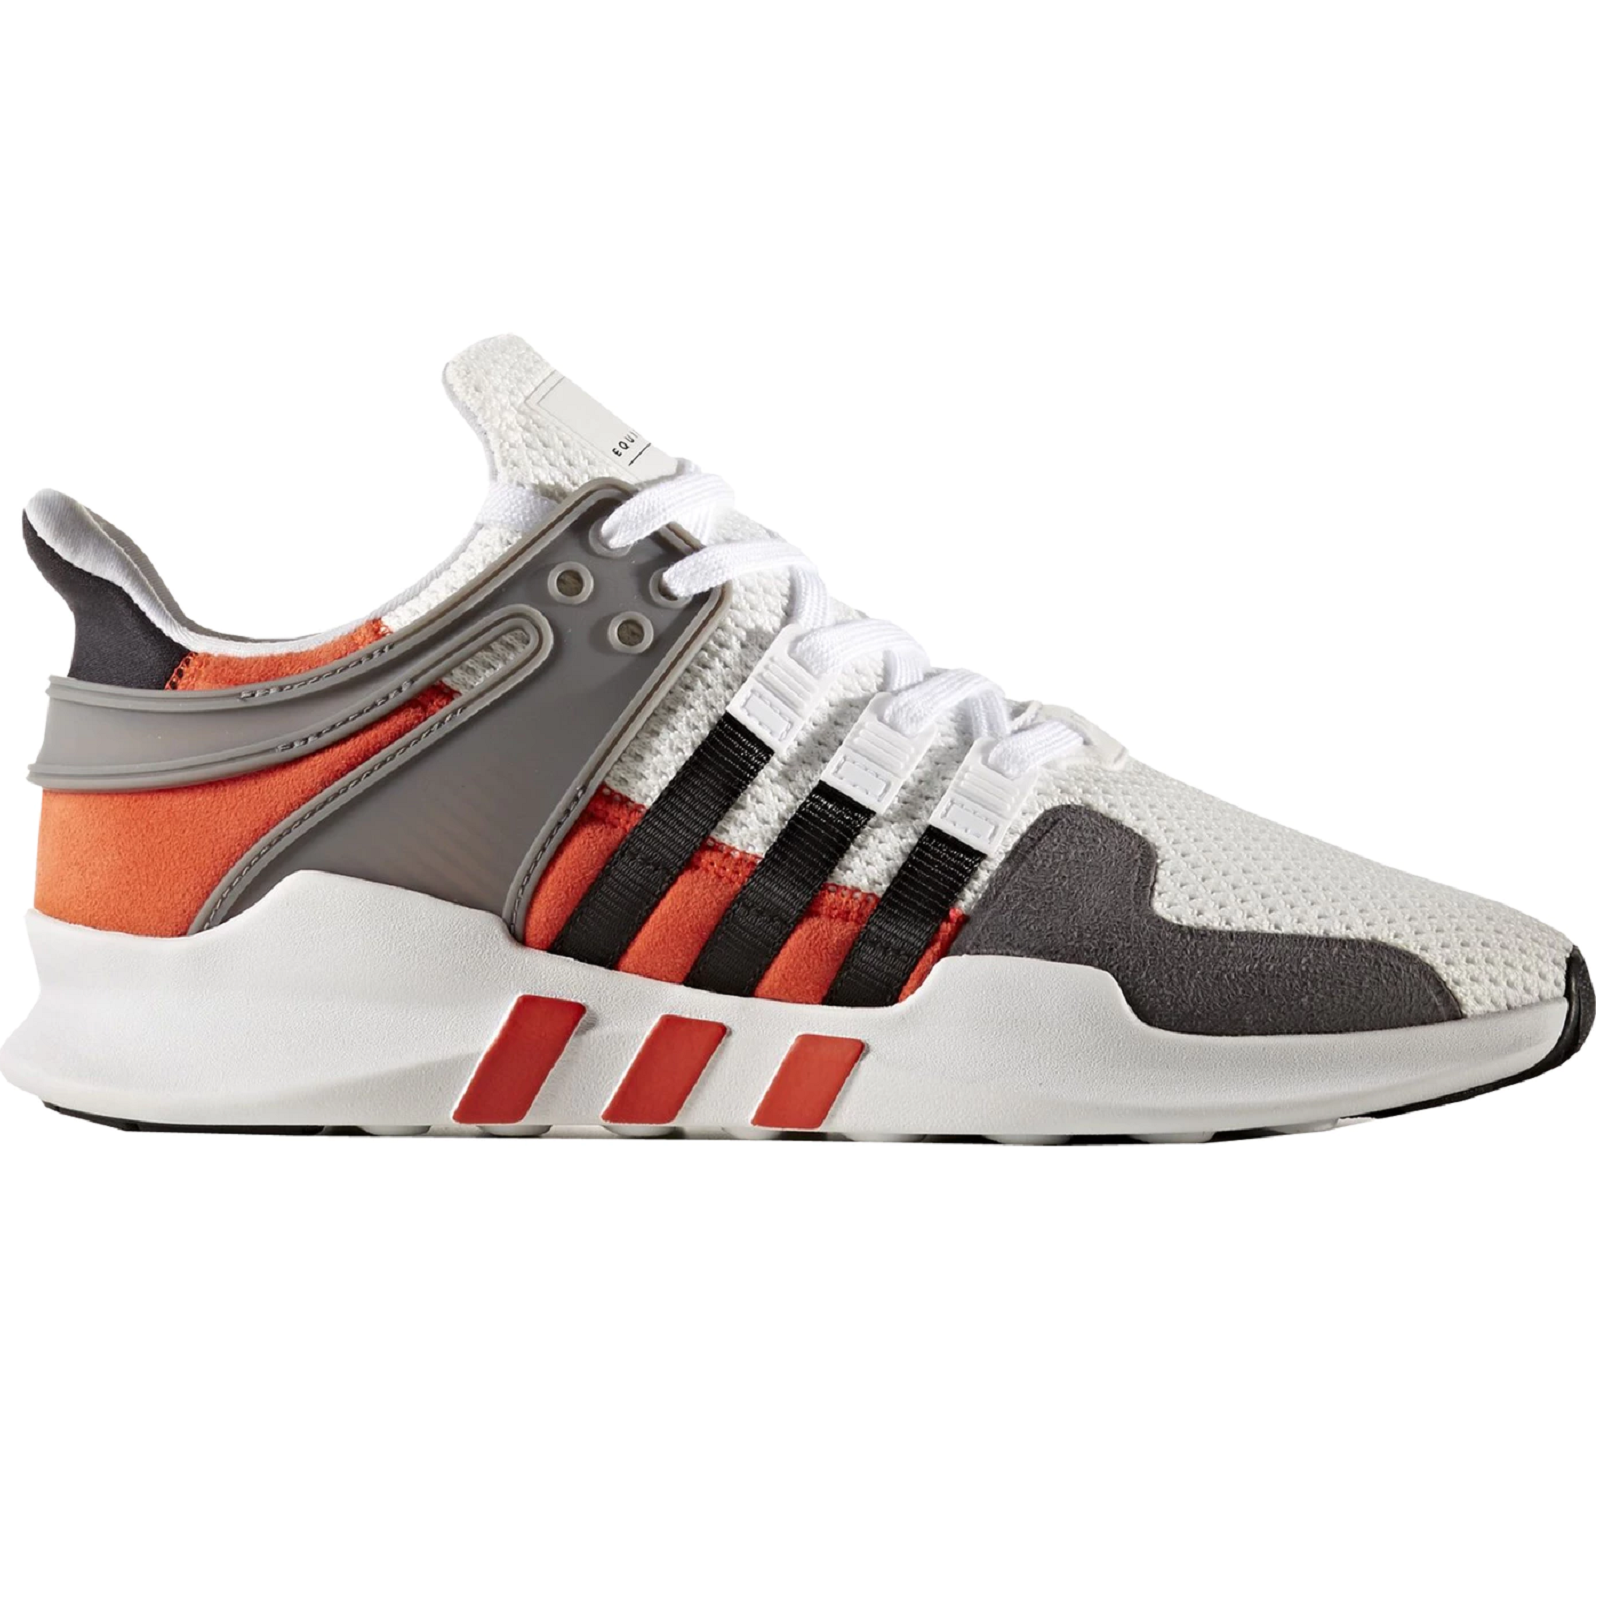 wholesale dealer 19ed5 dd166 Details about Adidas EQT Equipment Support ADV Sneaker Sport Shoes Trainers  white BY9584 SALE